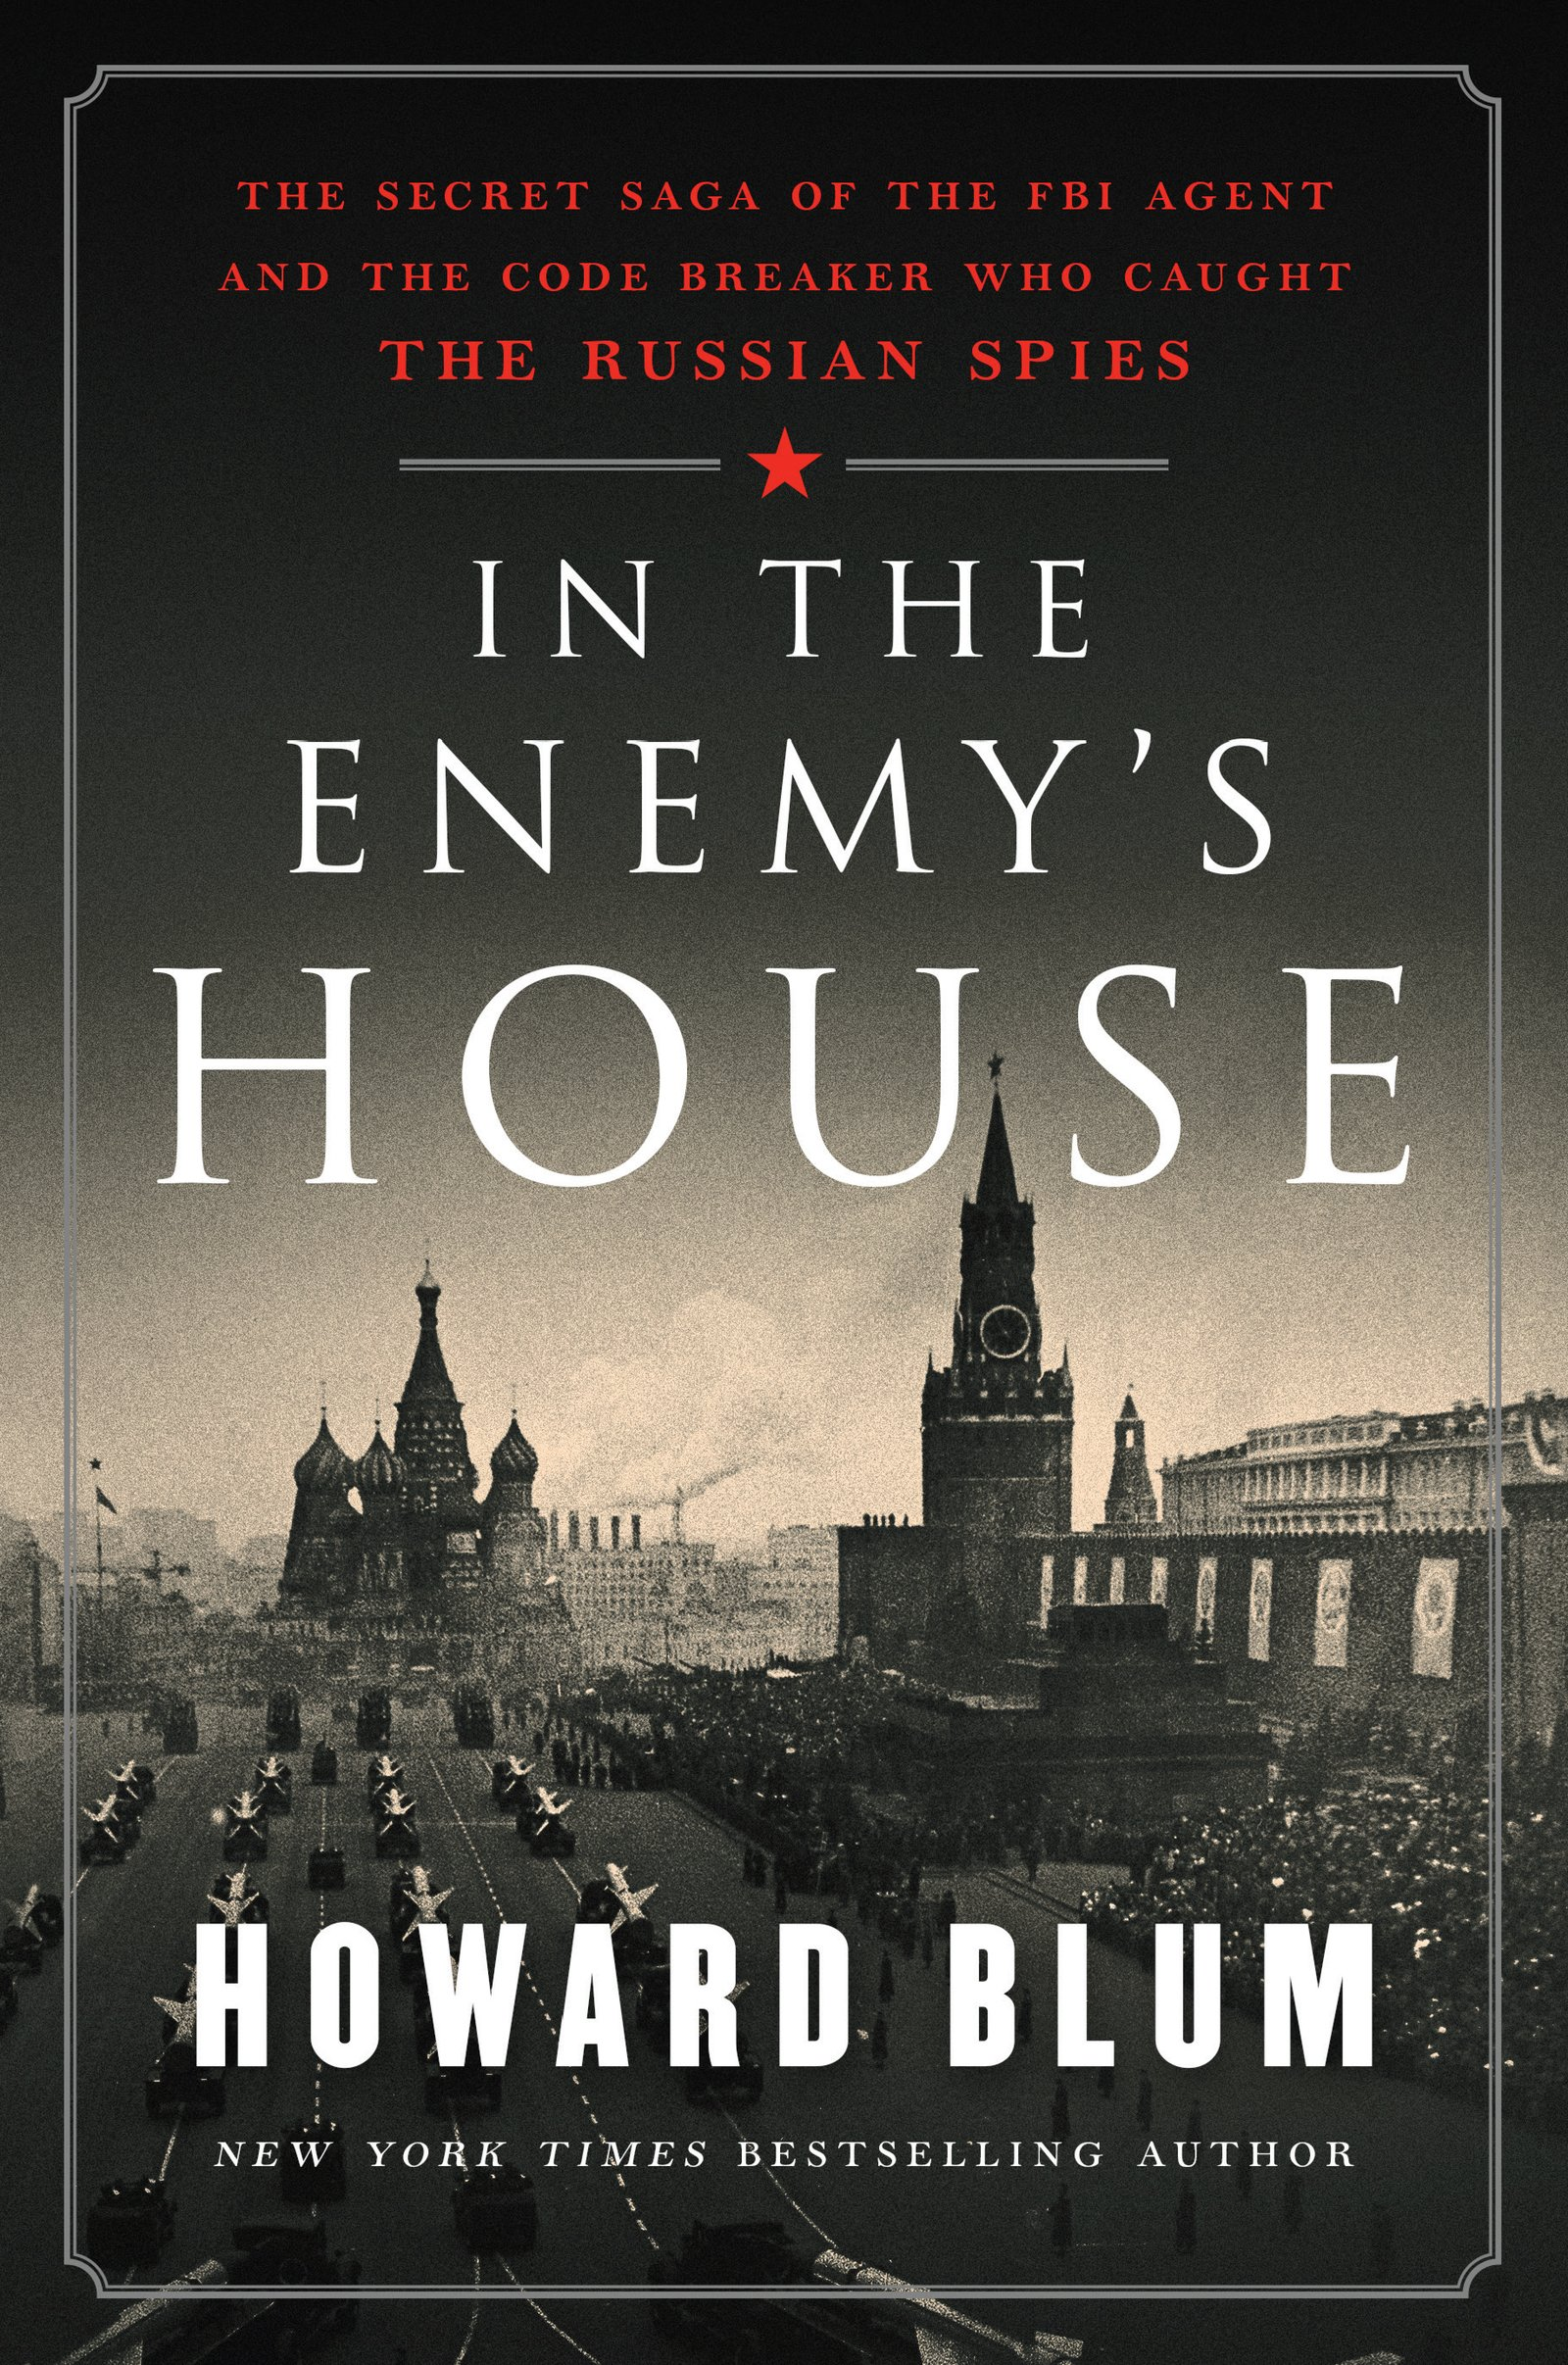 In The Enemy's House